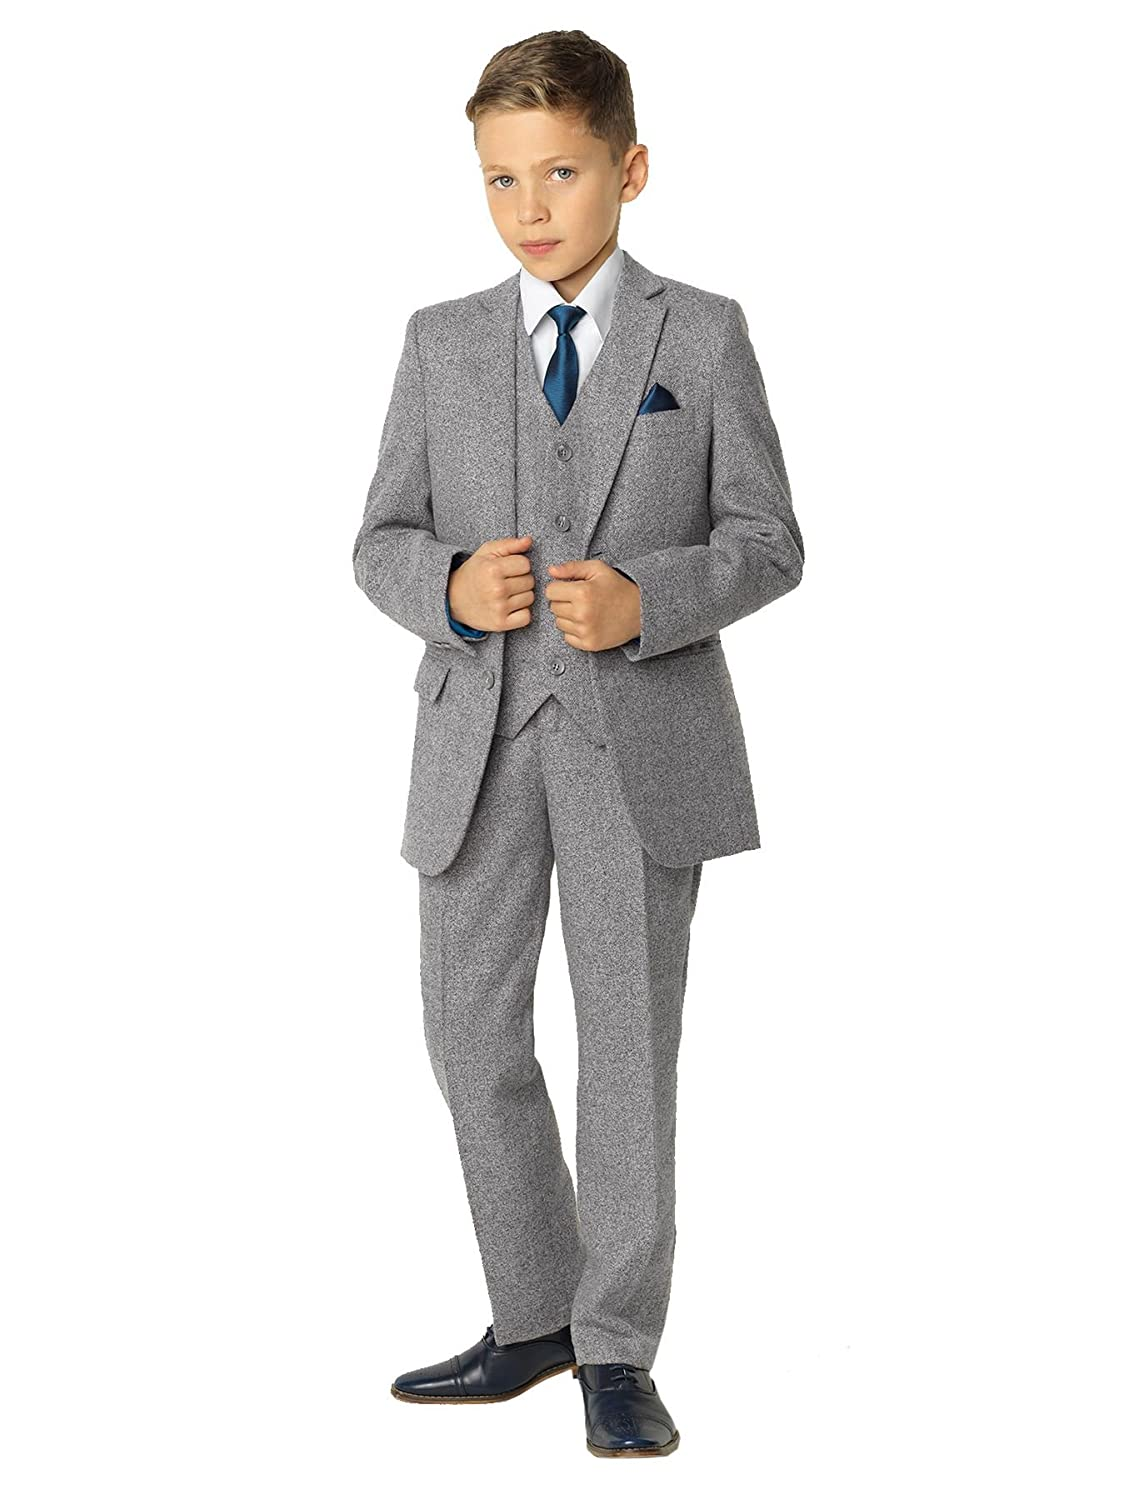 Paisley of London, Knox Light Gray Slim Fit Suit, Boys Formal Occasion Wear Set, X-Large -20